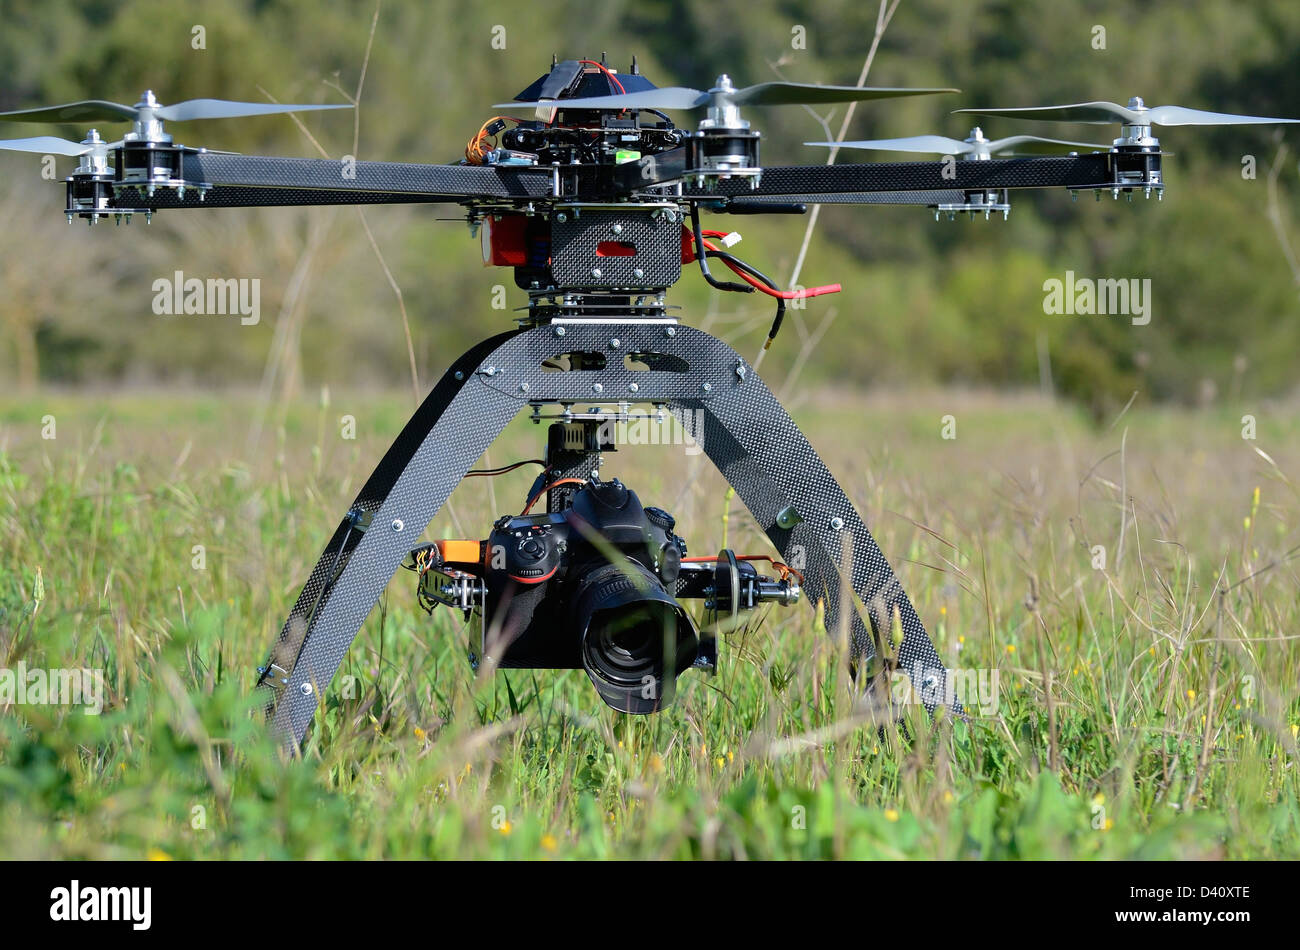 Drone and digital camera on an Unmanned Aerial Vehicle (UAV or Drone), with six rotors, used here for aerial photography - Stock Image